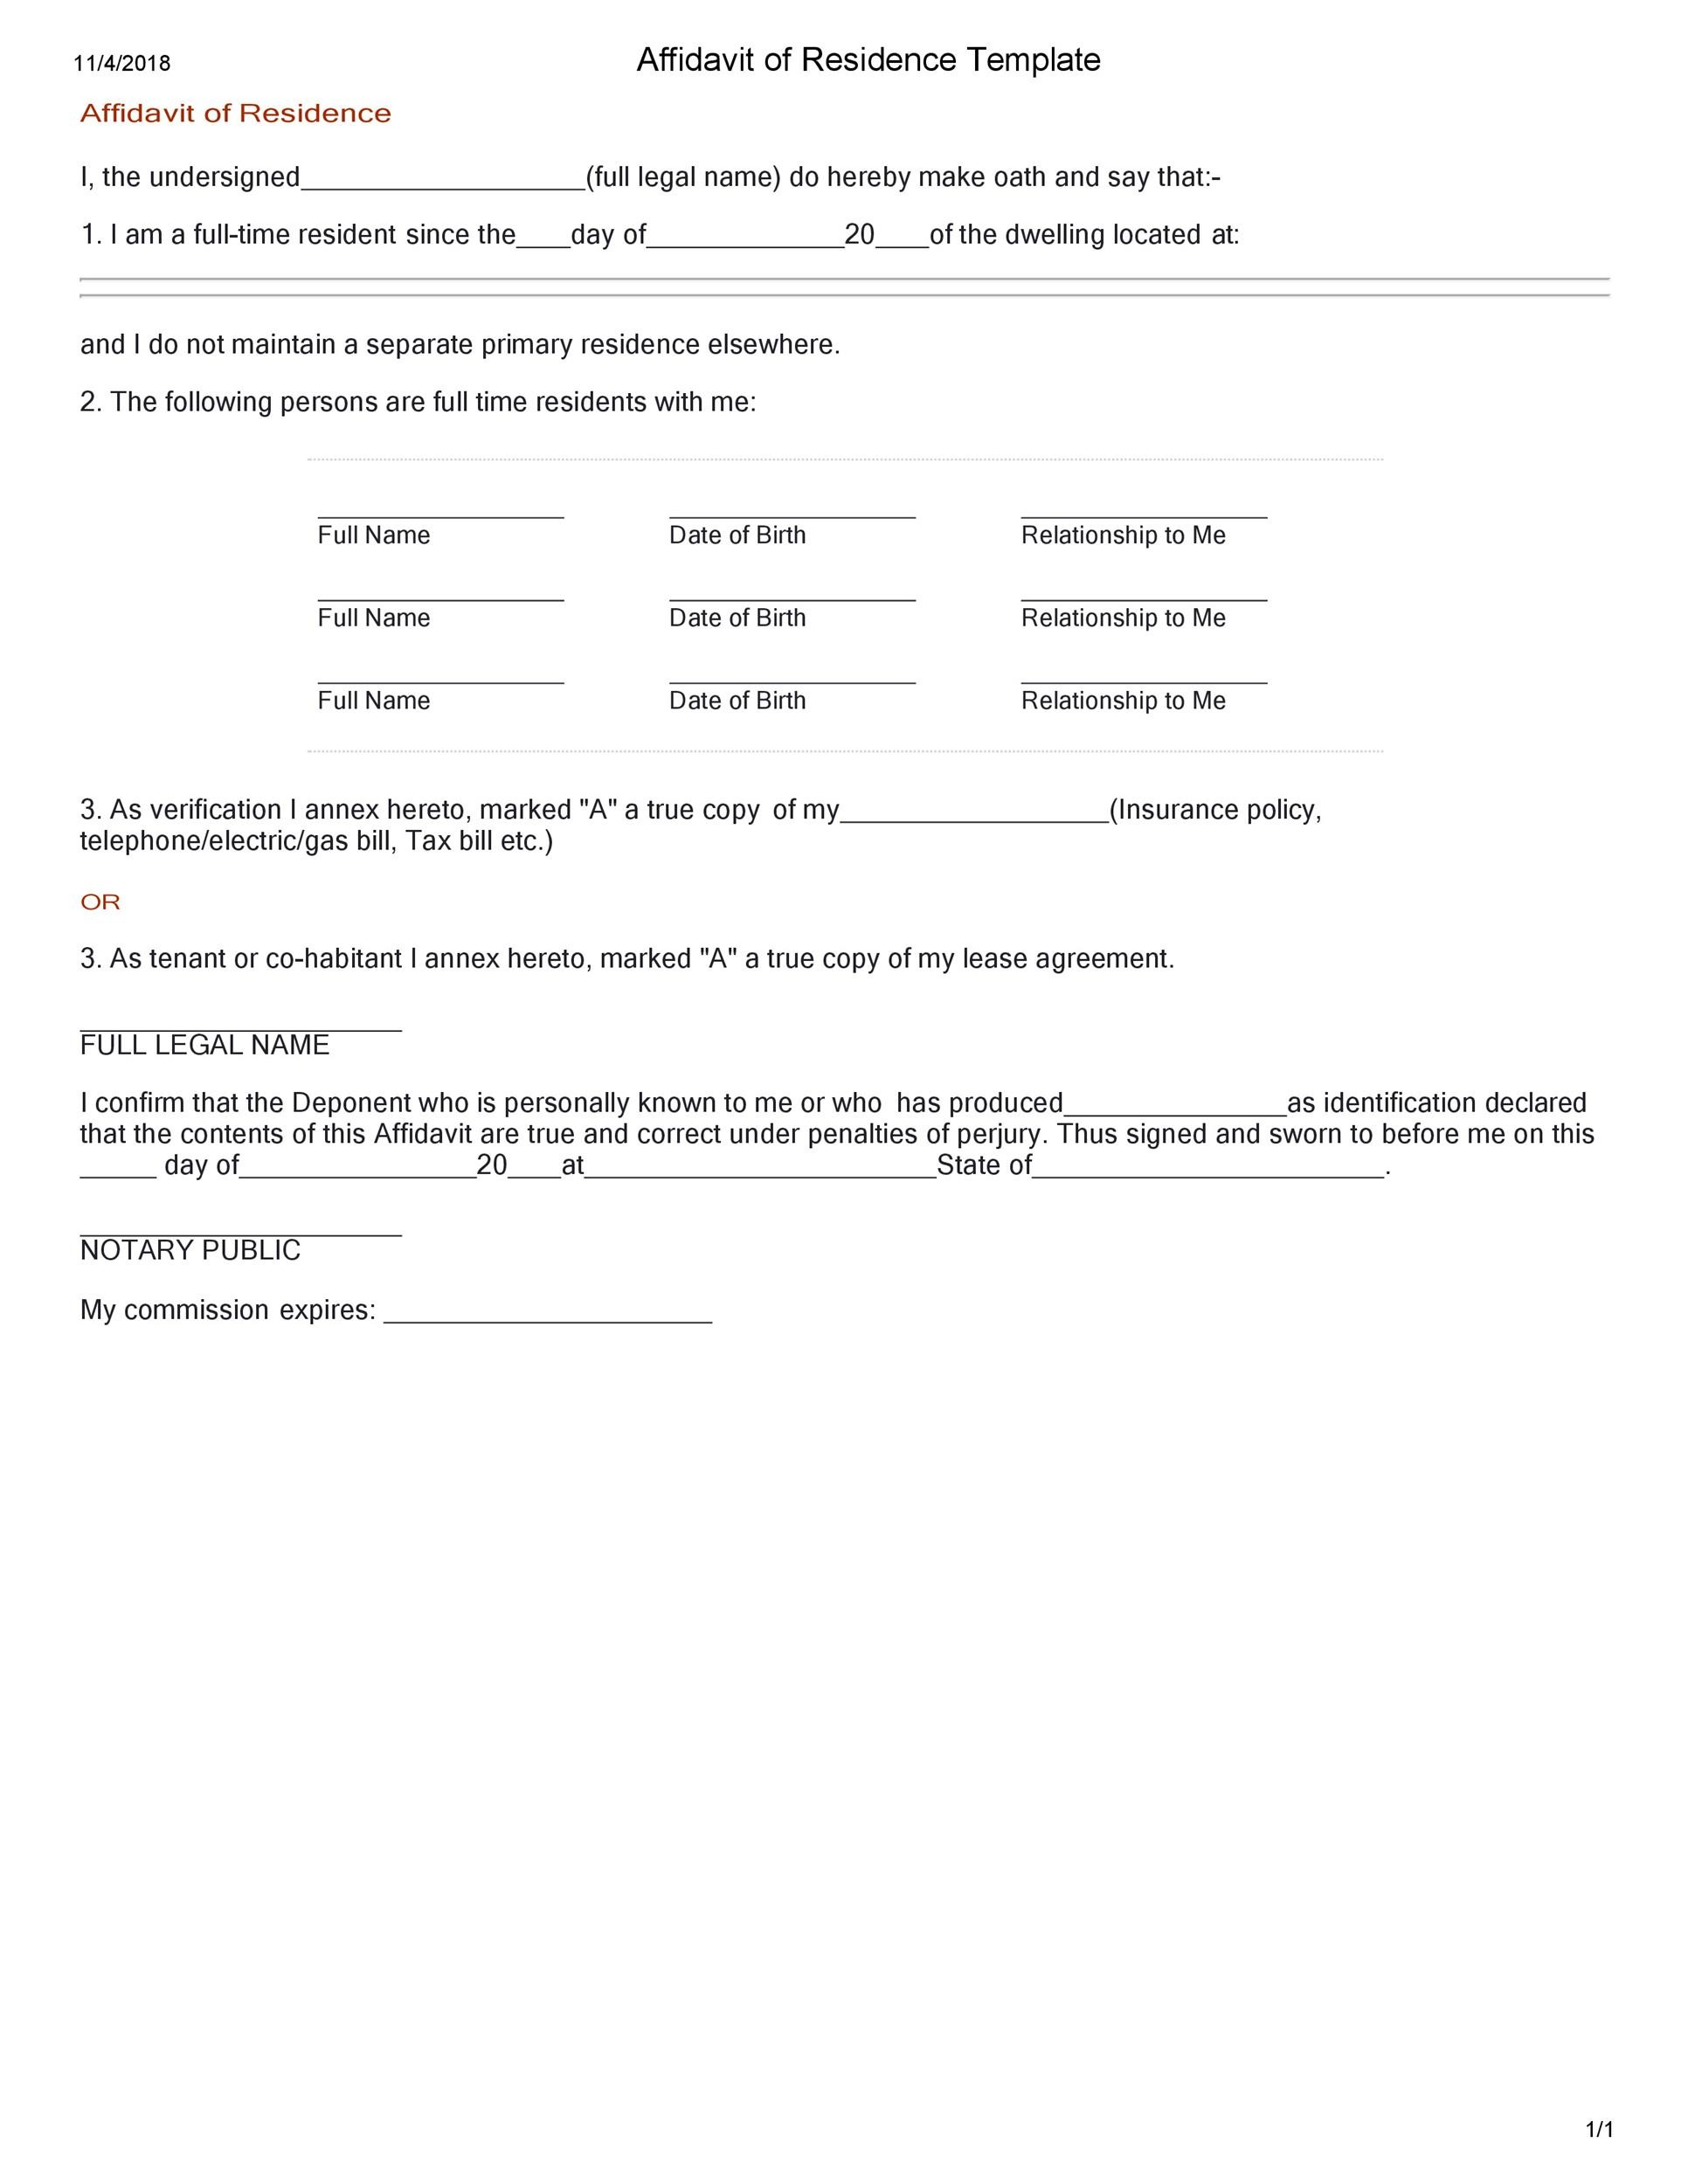 Proof Of Residence Letter Format from templatelab.com